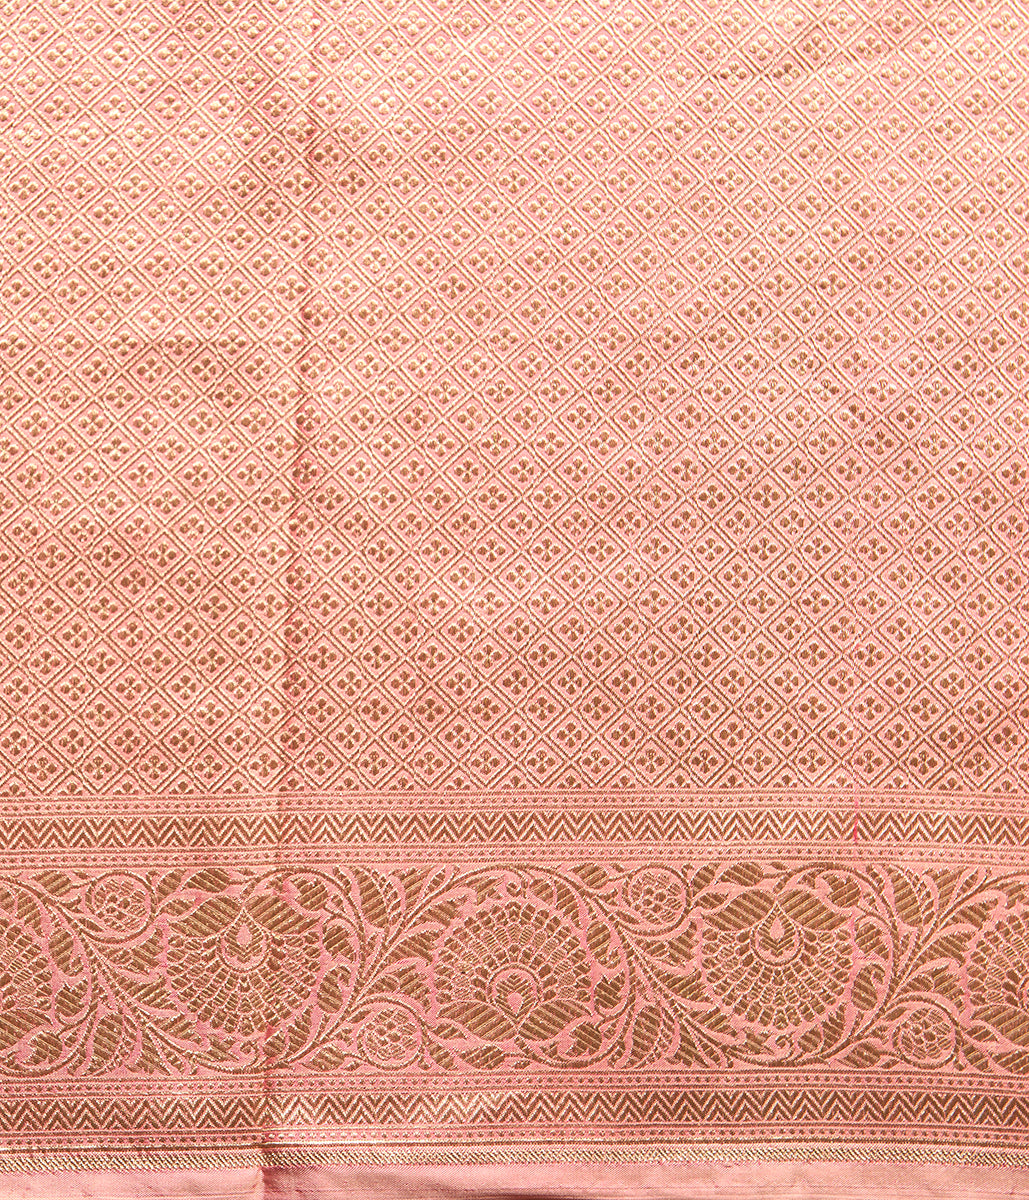 Soft Pink Banarasi Katan Silk Saree with Traditional Booti